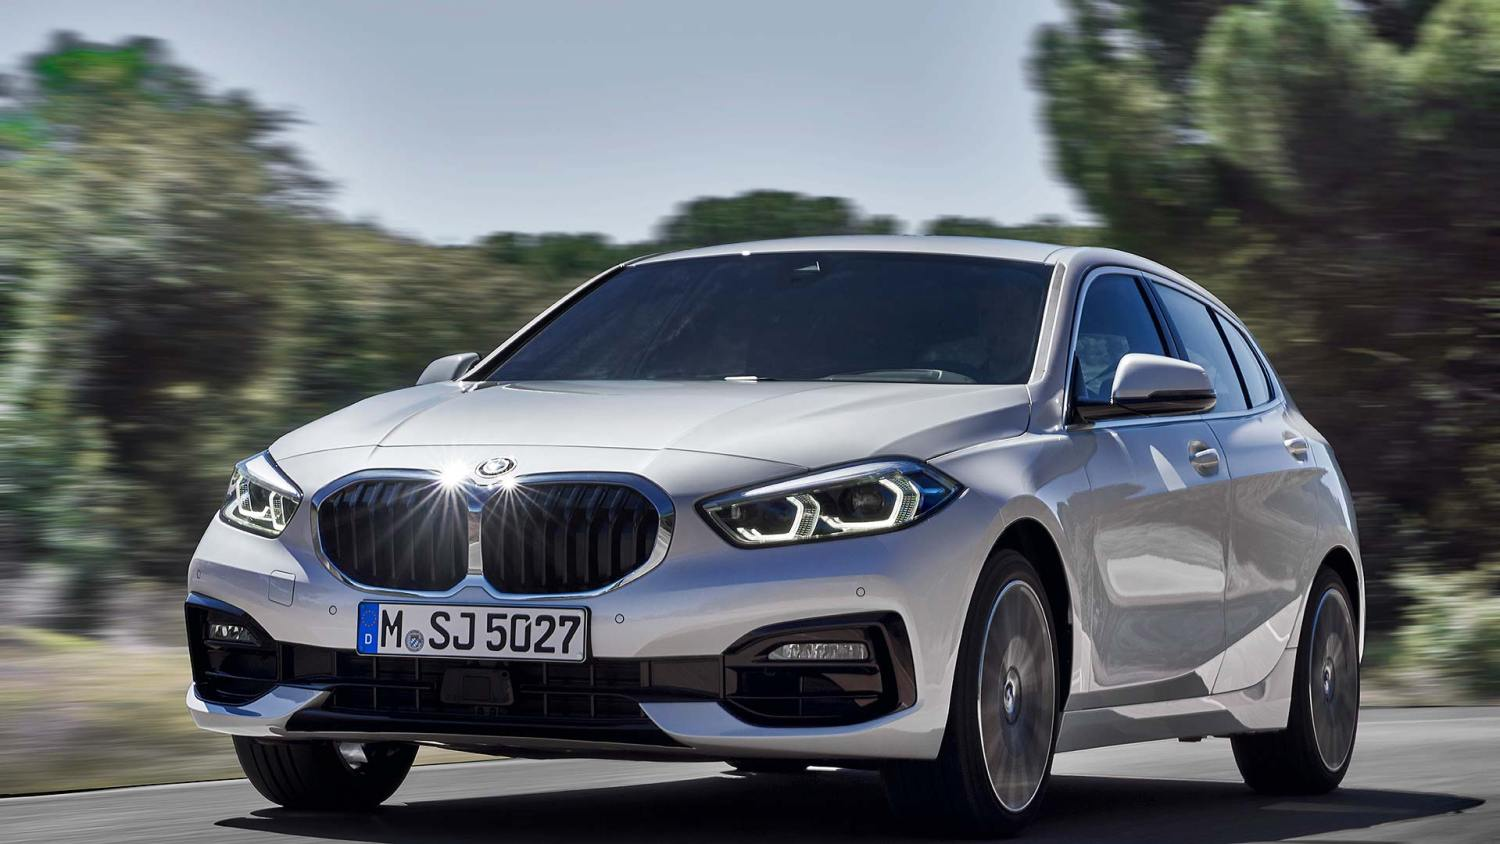 New BMW 1 Series in white